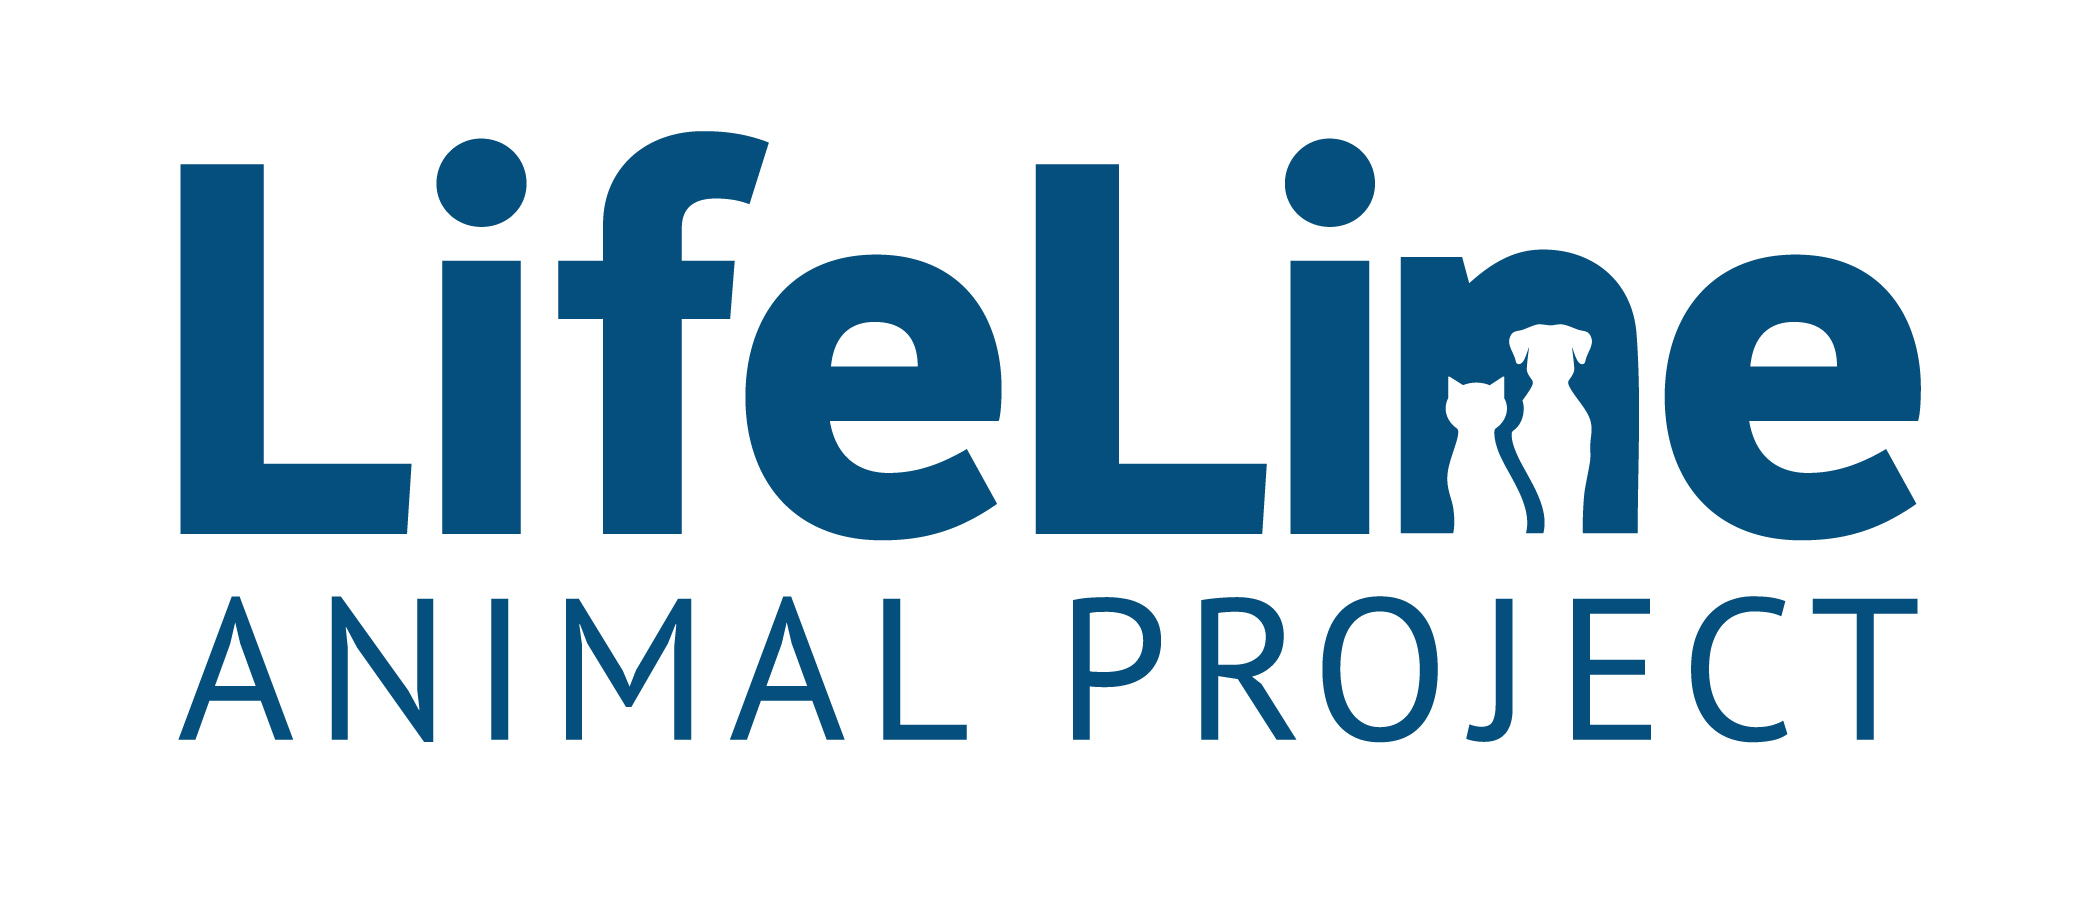 Lifeline_final_logo_blue-01.jpg